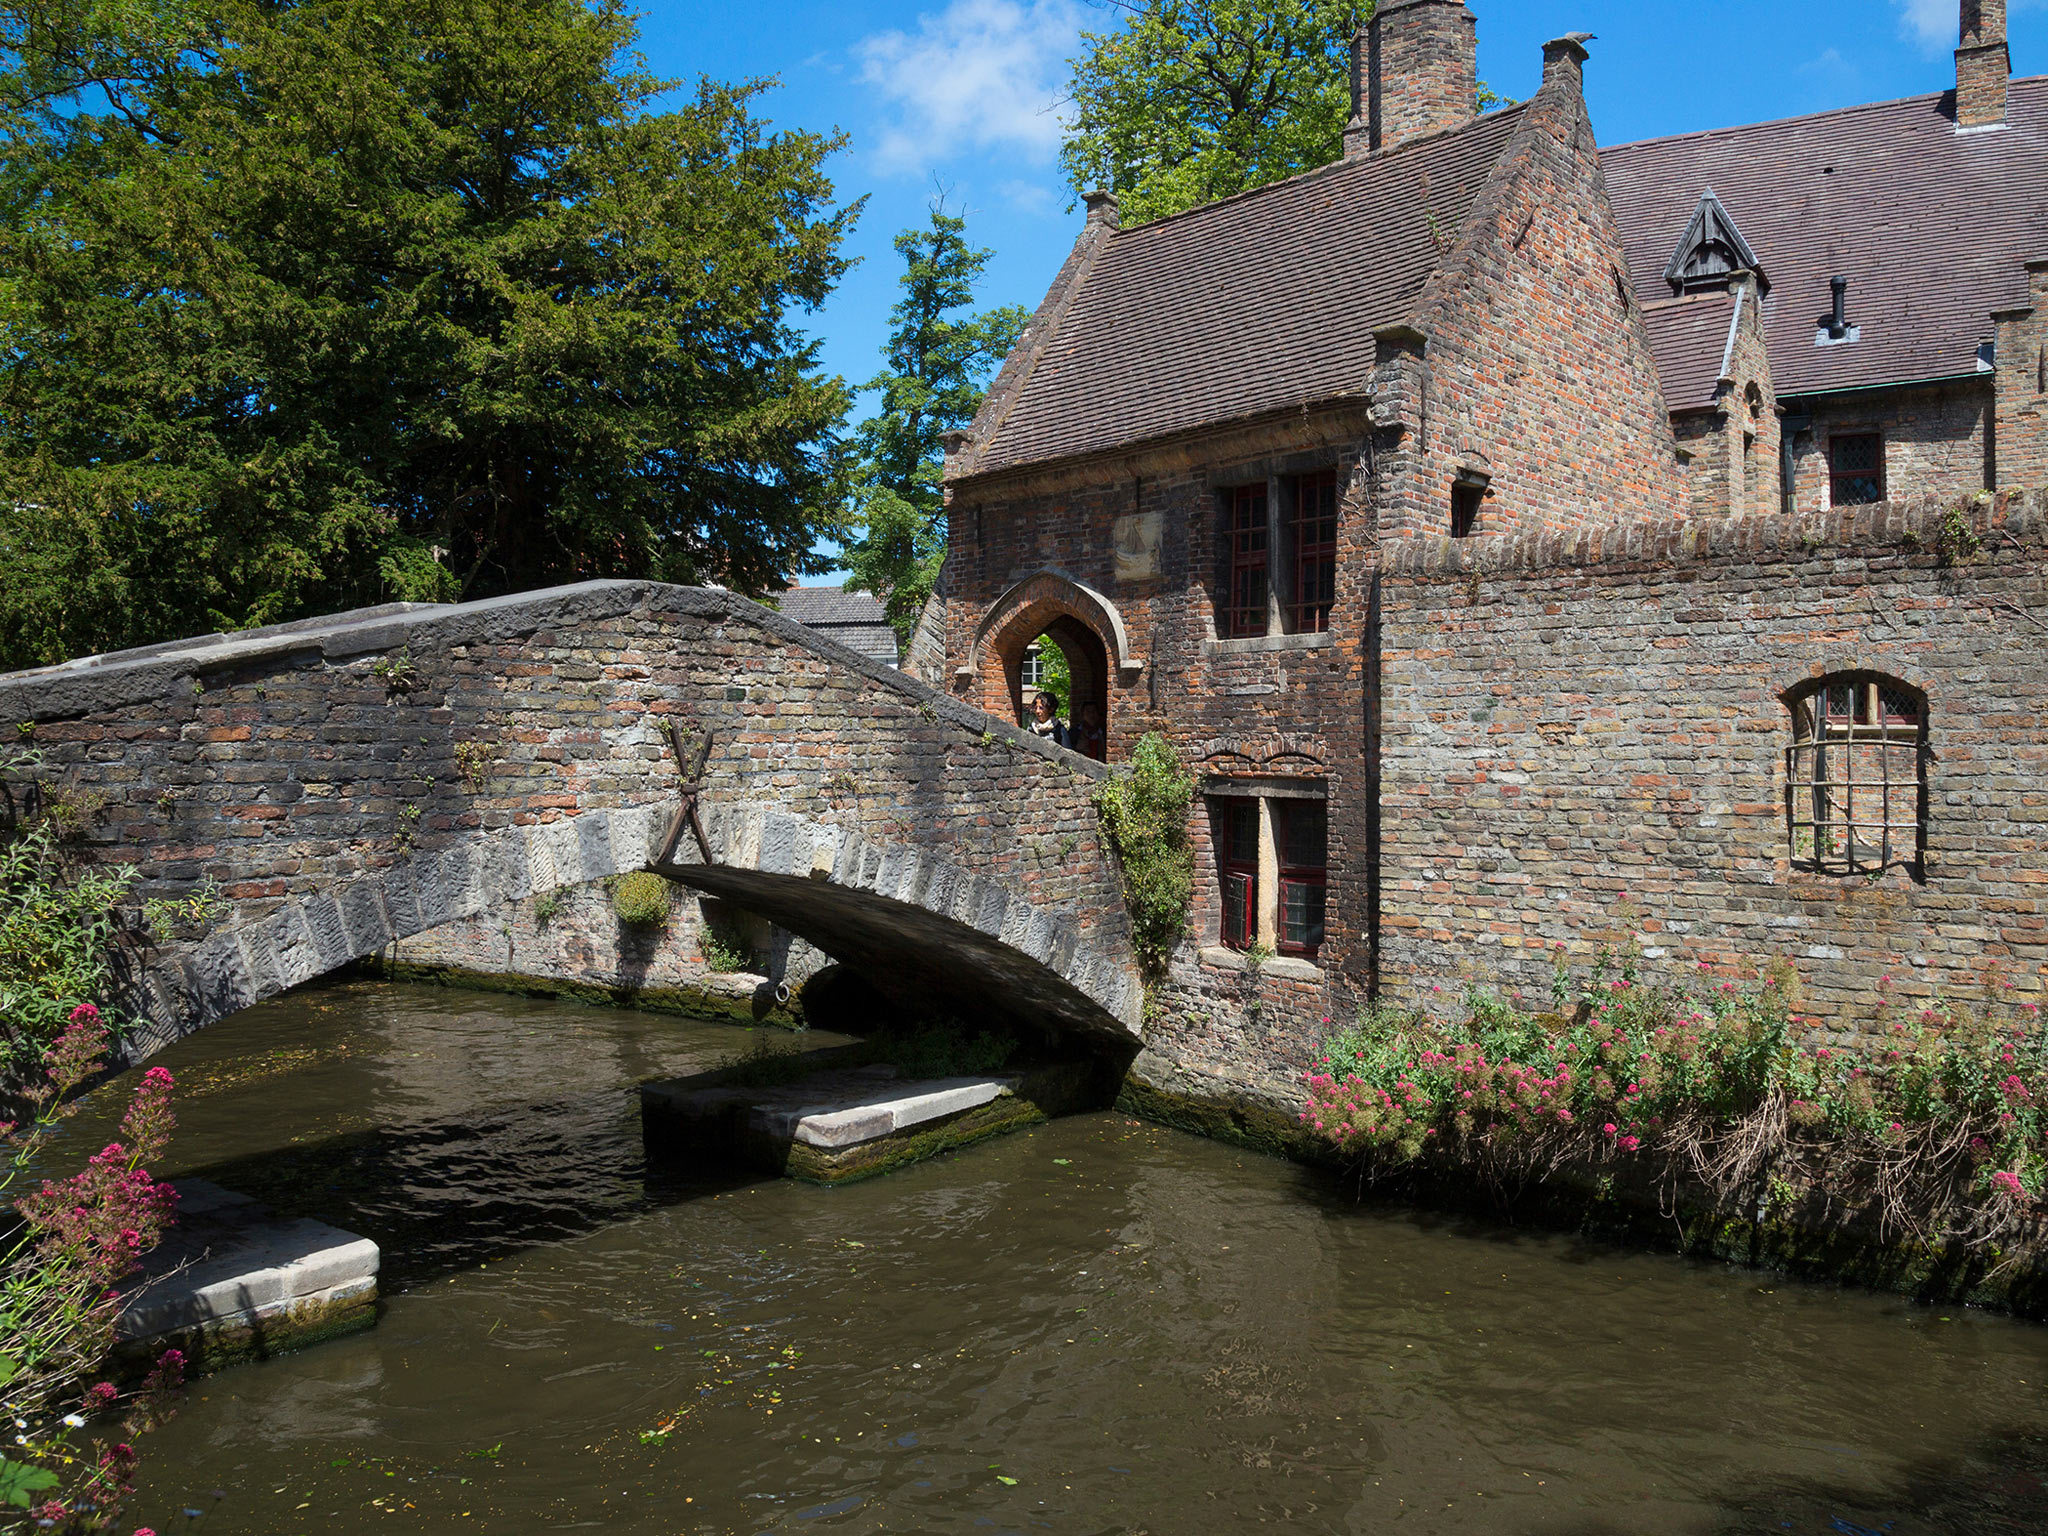 Lovers' Bridge and Lake of Love in Bruges